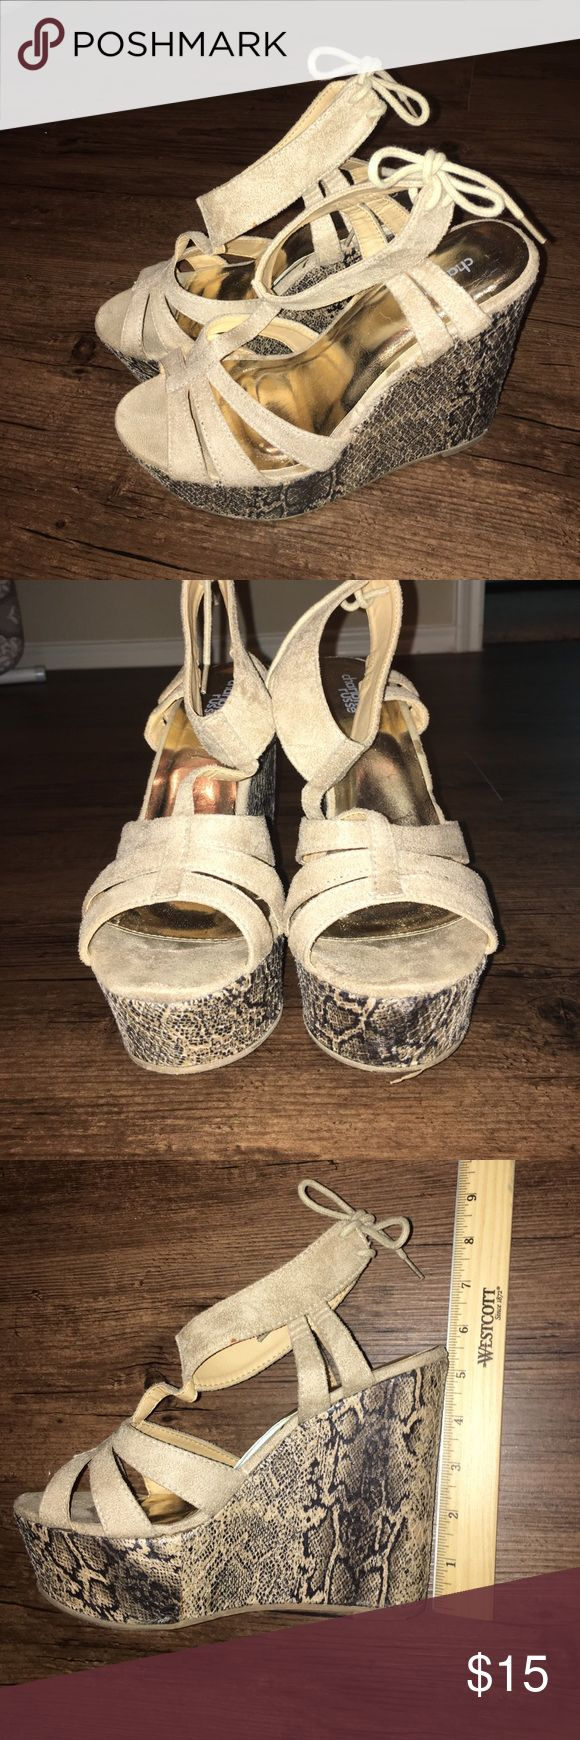 Charlotte Russe Tan Snake Skin Wedges Tan Snake skin Wedges. Super comfy. Only wear & tear is located on the soles. Other than that they're in great condition! Charlotte Russe Shoes Wedges